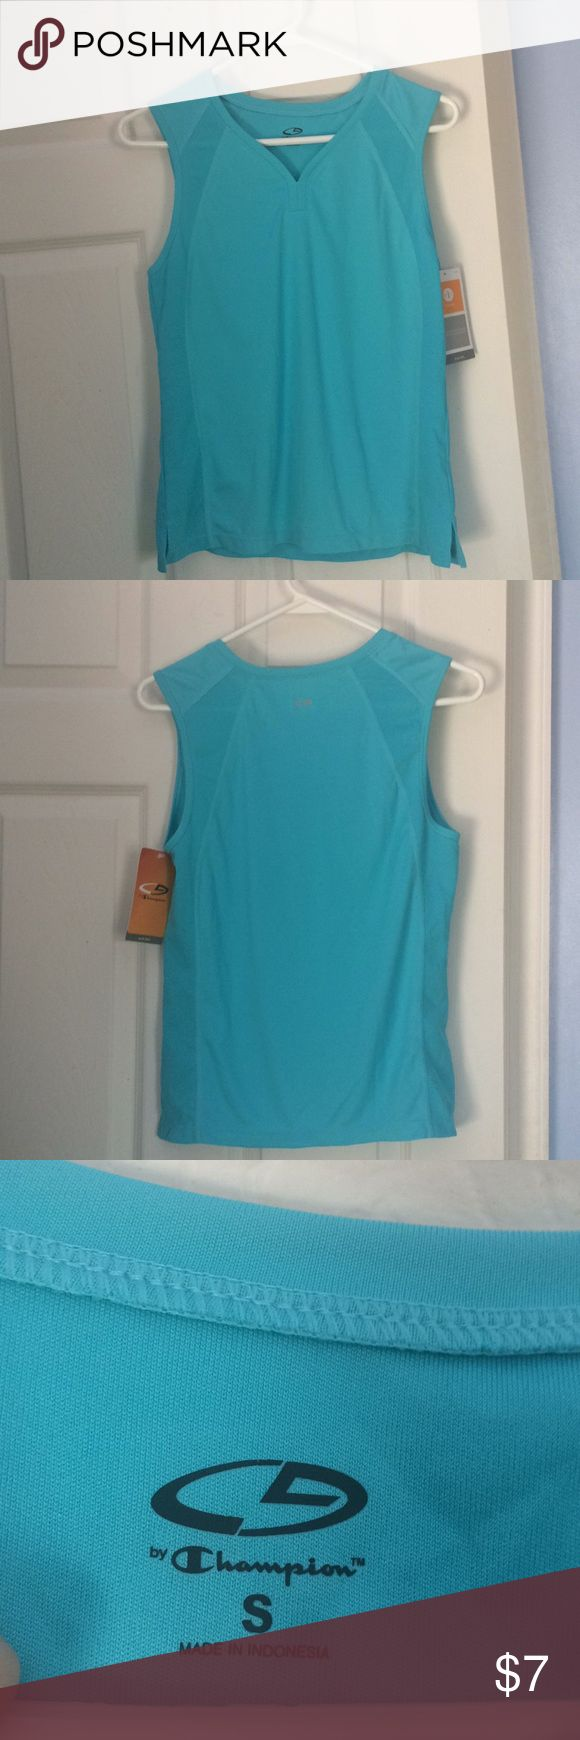 C9 by champion Teal aqua color athletic tank top NWT lightweight quality athletic tank top from C9 by champion in a size small  Fabric makeup is 100% polyester  Bundles and offers are always welcome  HAPPY POSHING POSHERS  FOR SELLER TUB D1 Bag 5 Champion Tops Tank Tops